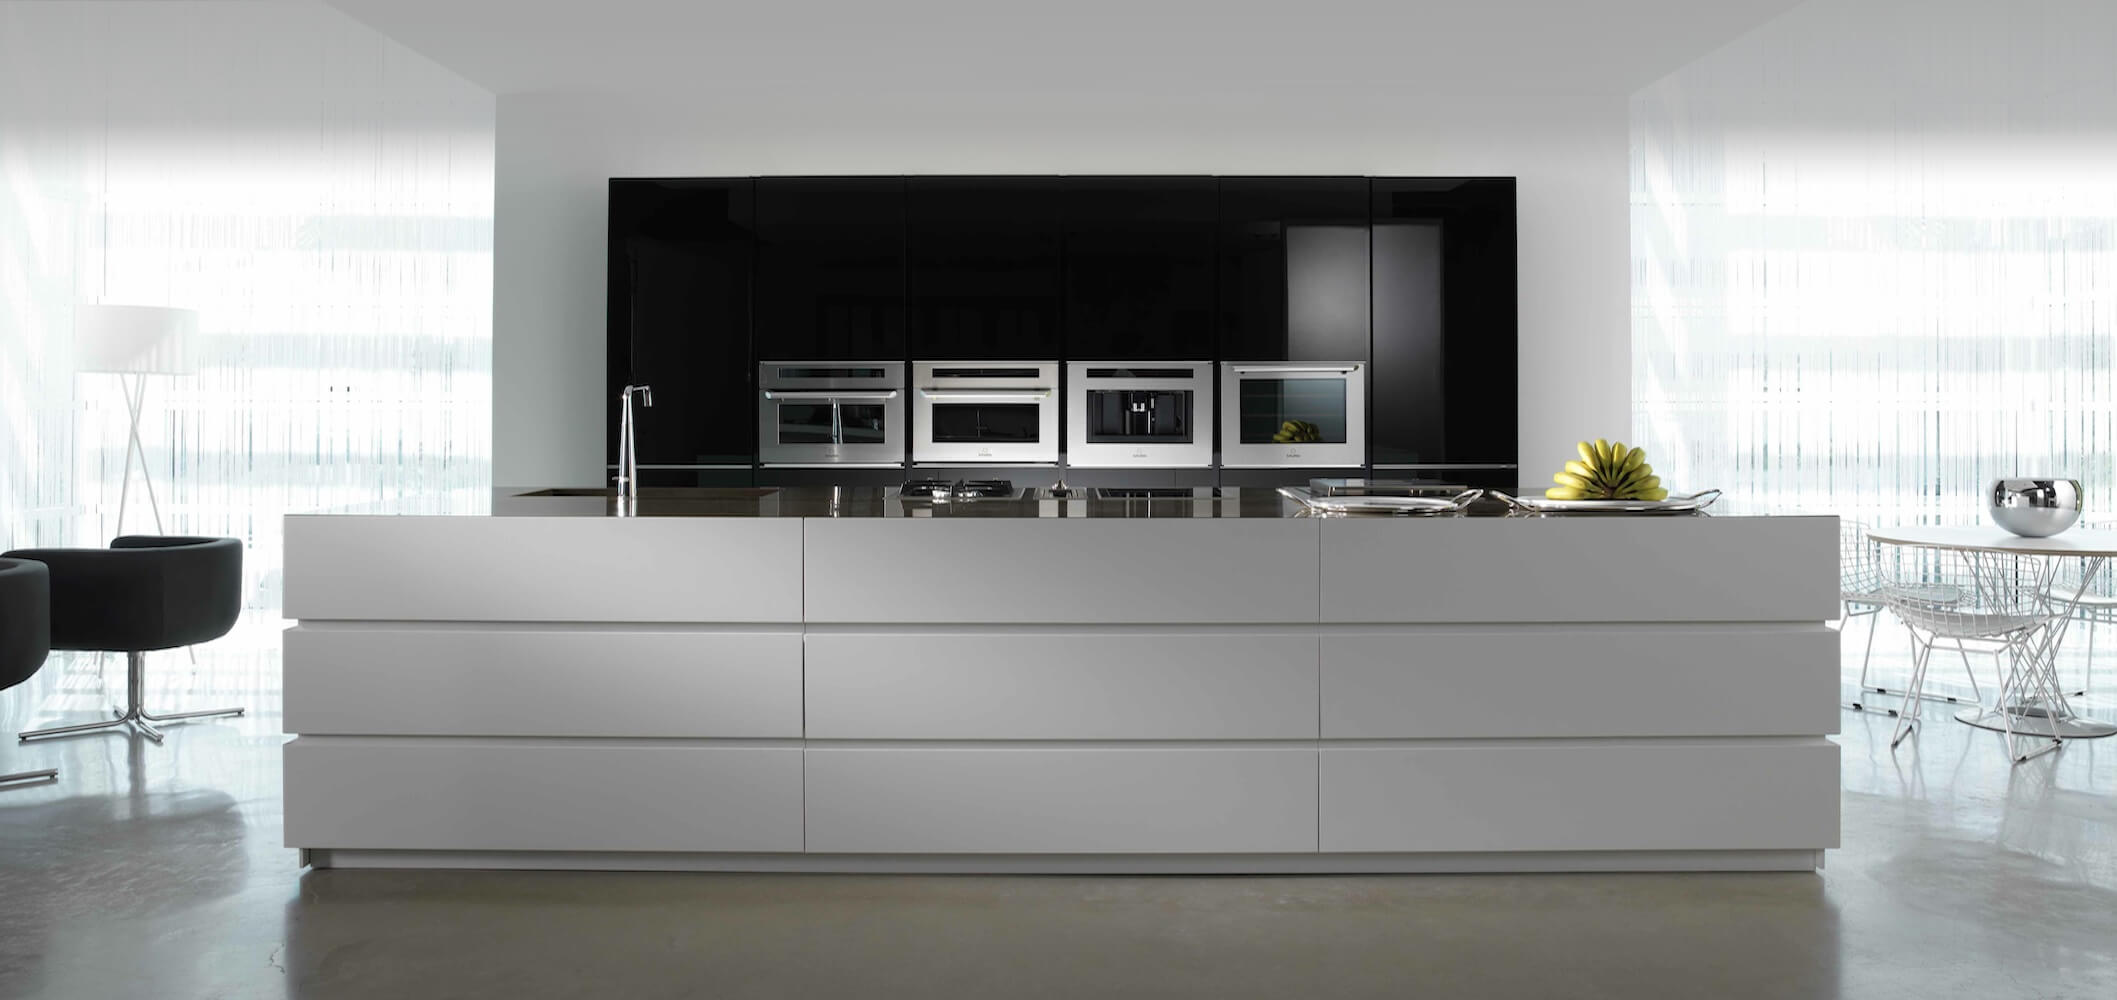 20 state of the art modern kitchen designs by reeva design for Modern large kitchen design